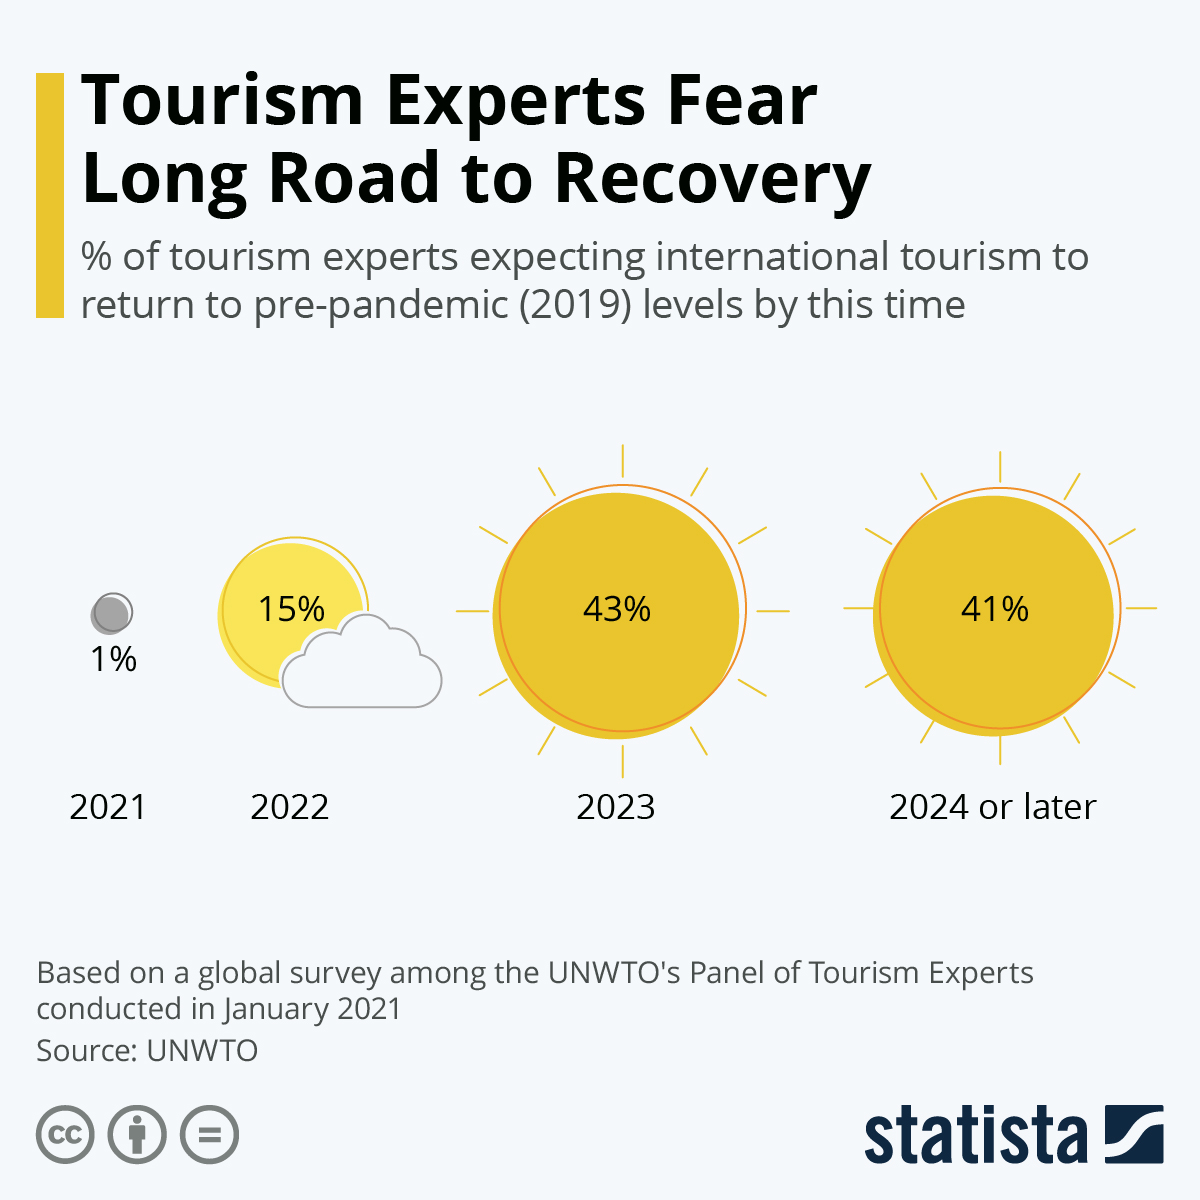 Tourism experts fear for a long recovery road